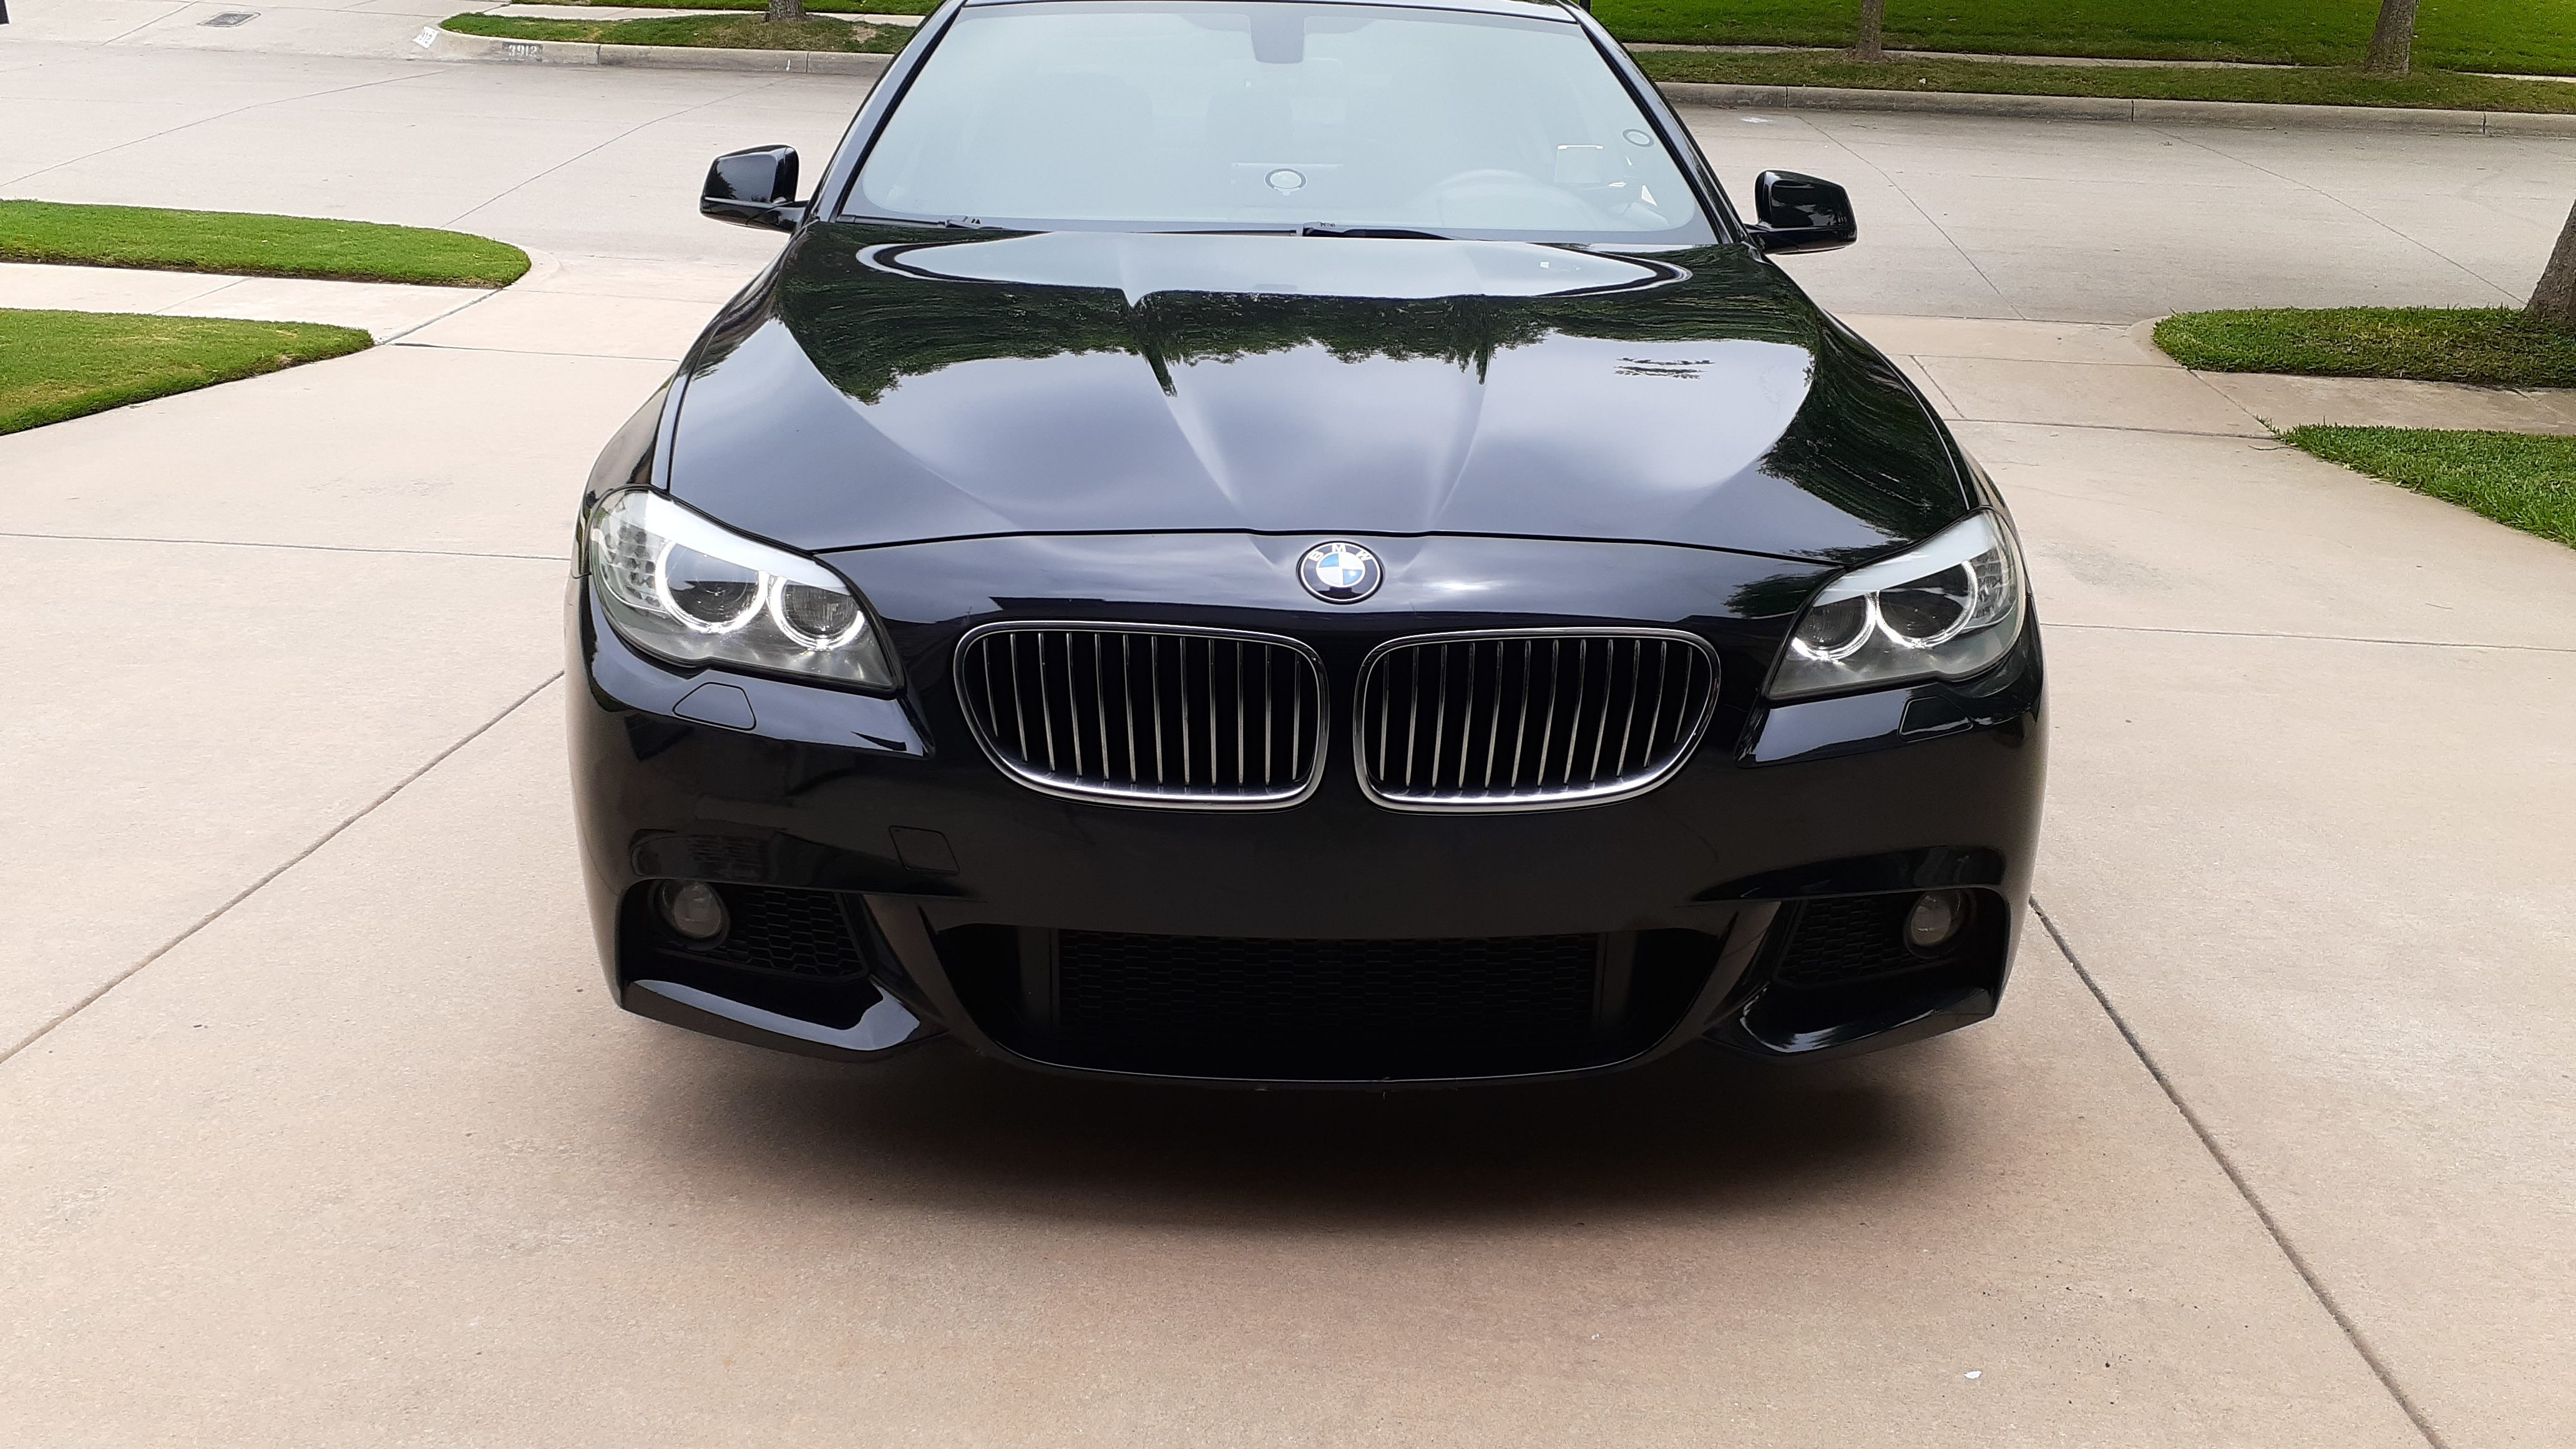 BMW 528i scratches/chips